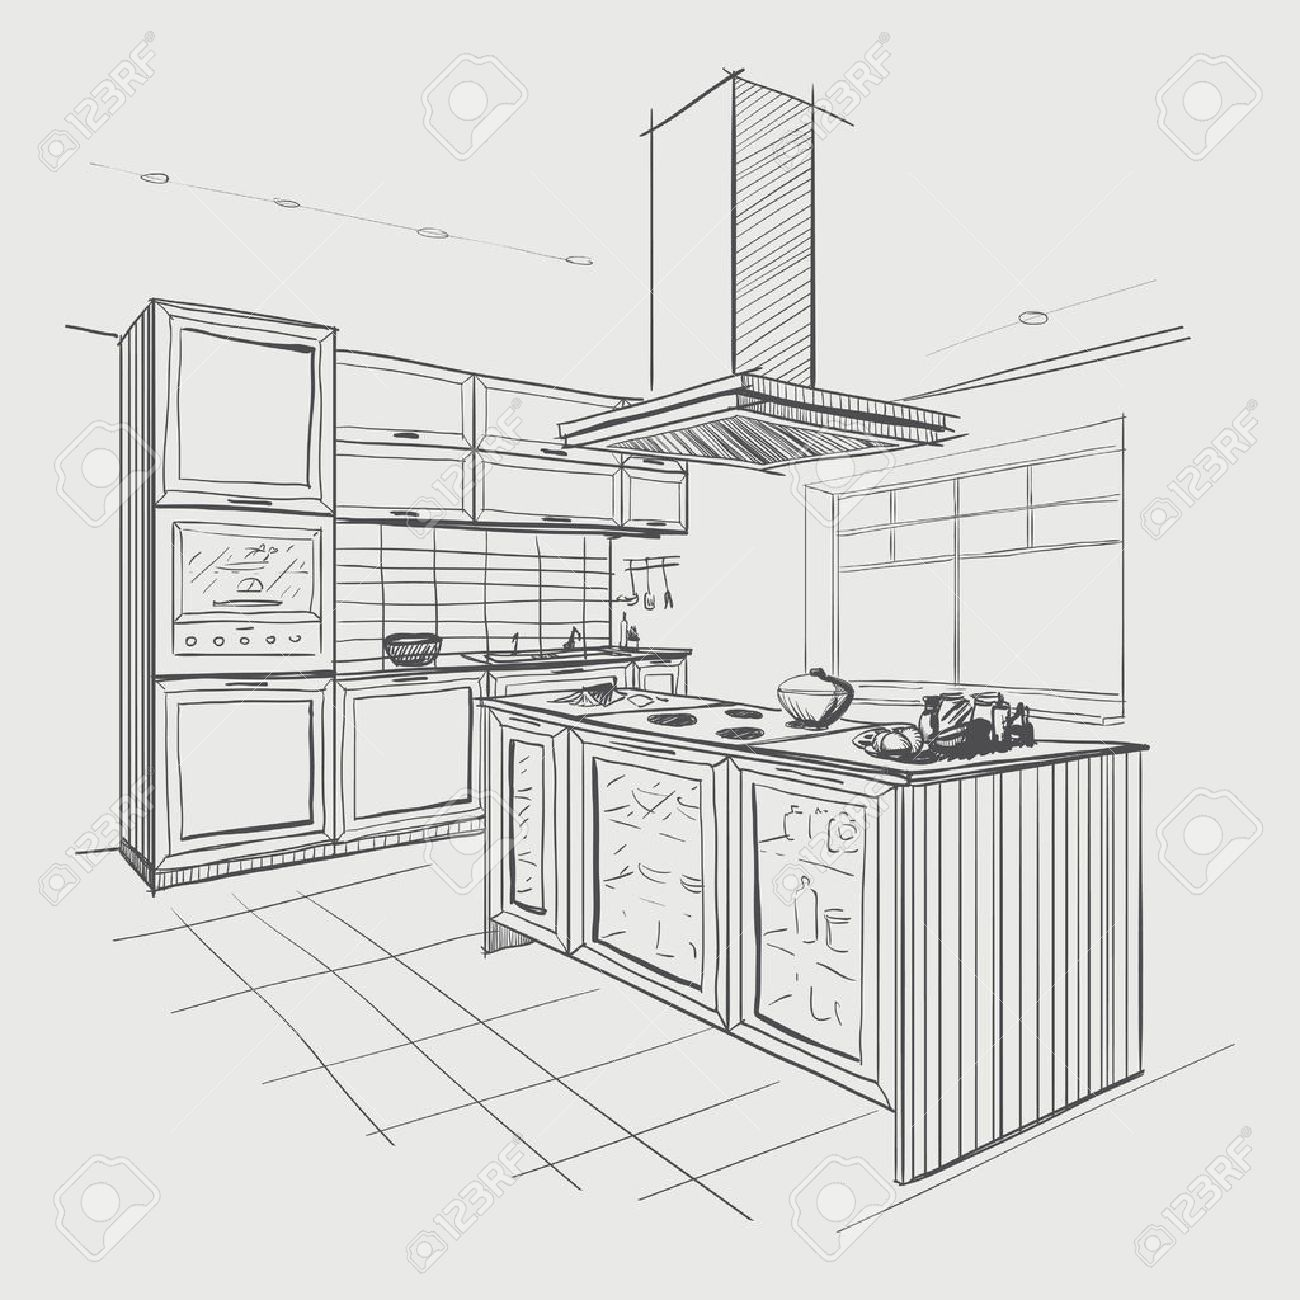 Interior Sketch Of Modern Kitchen With Island Royalty Free Cliparts